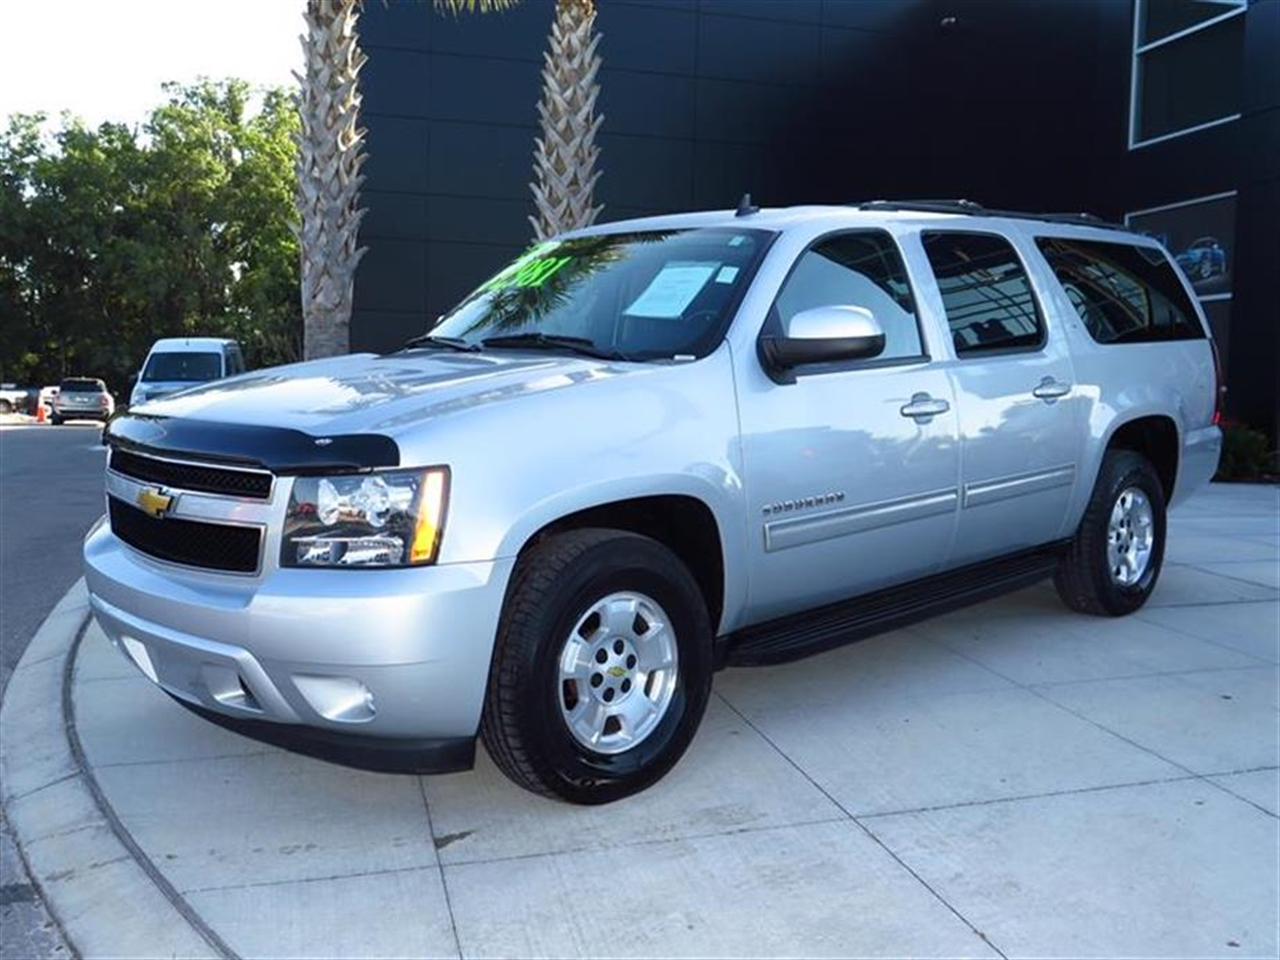 2012 CHEVROLET SUBURBAN 2WD 4dr 1500 LT 54711 miles Air conditioning rear auxiliary tri-zone aut